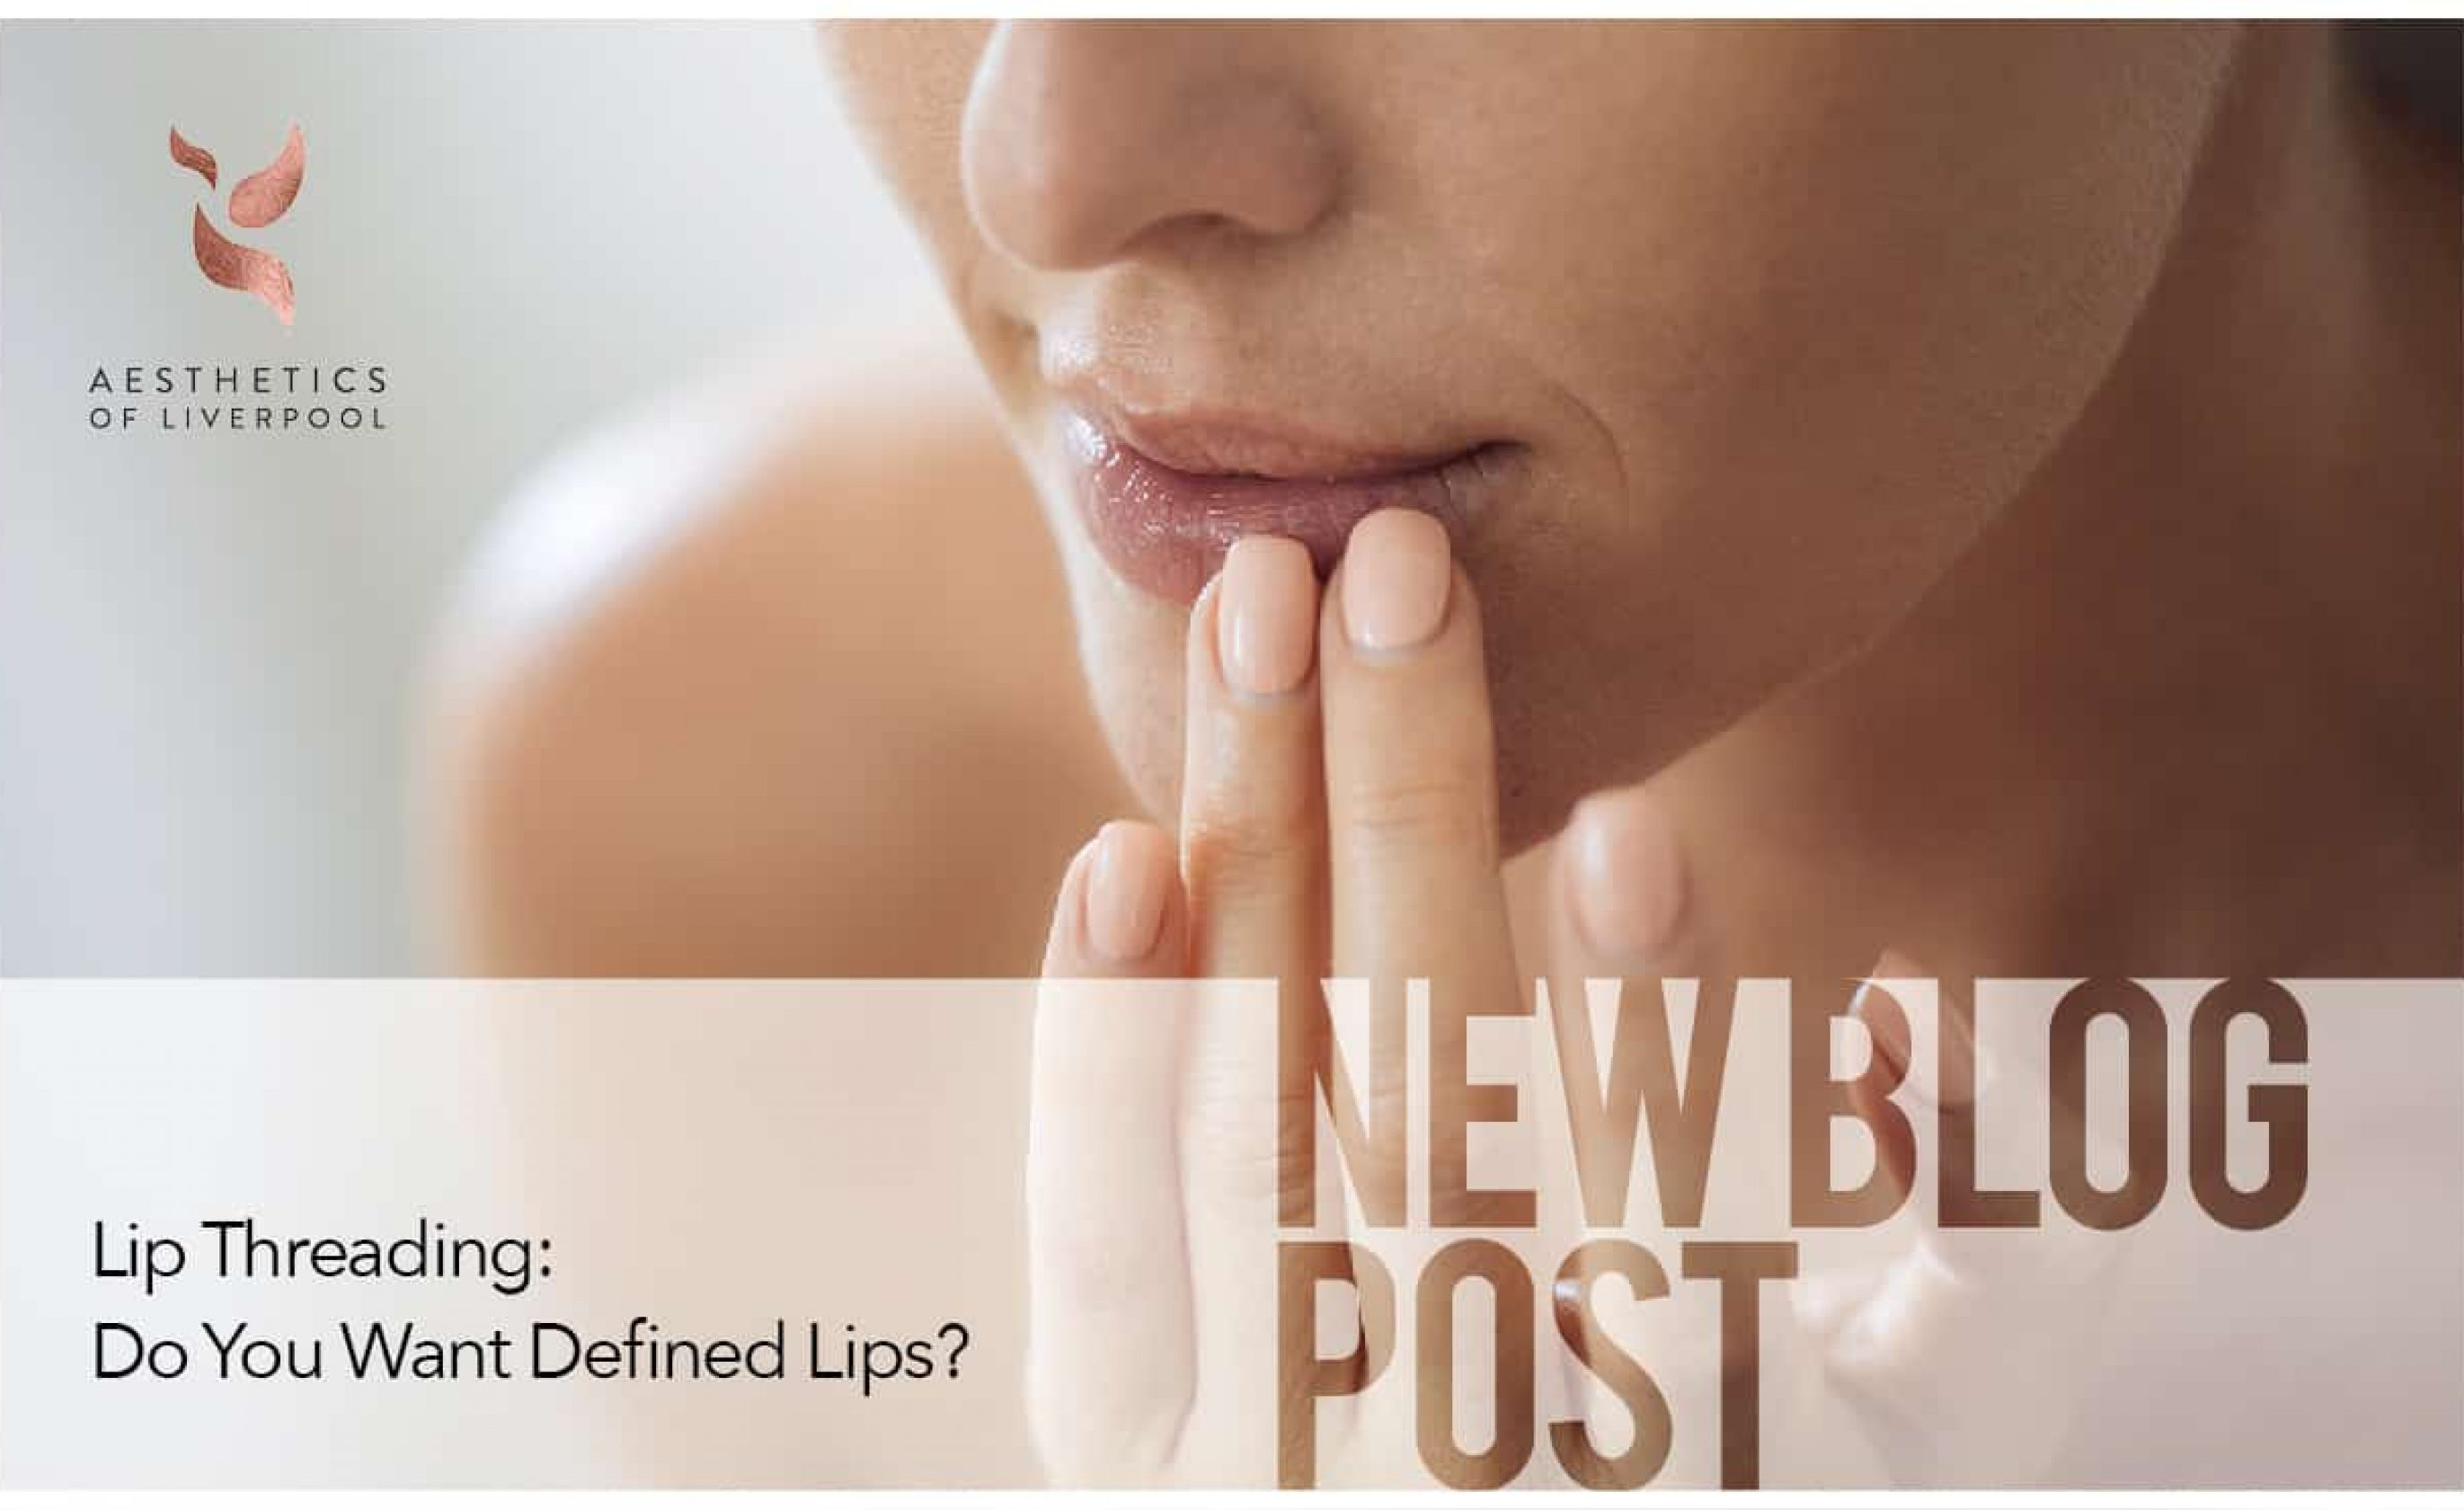 Lip Threading: Do You Want Defined Lips?